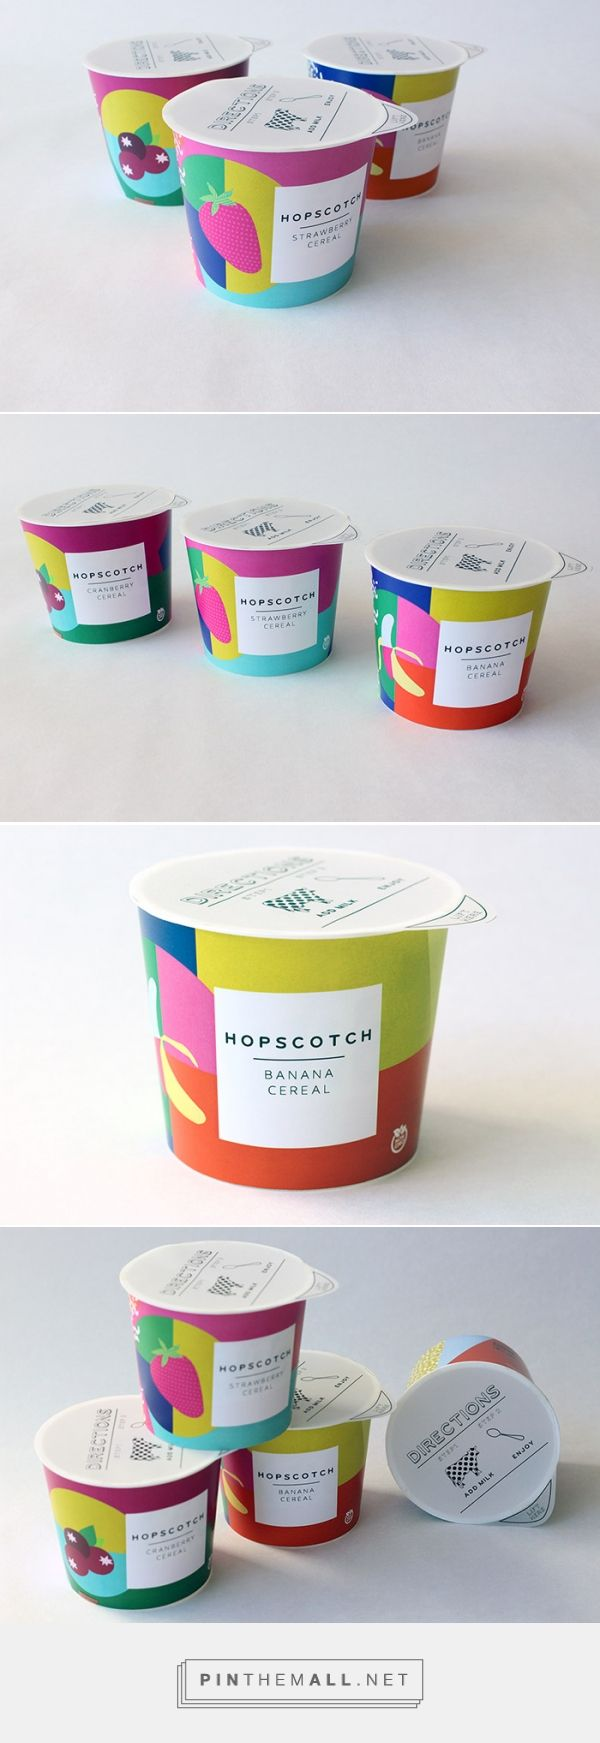 HOPSCOTCH - To-go cereal package design by Katherine Covell. Colorblock design and great color palettes.